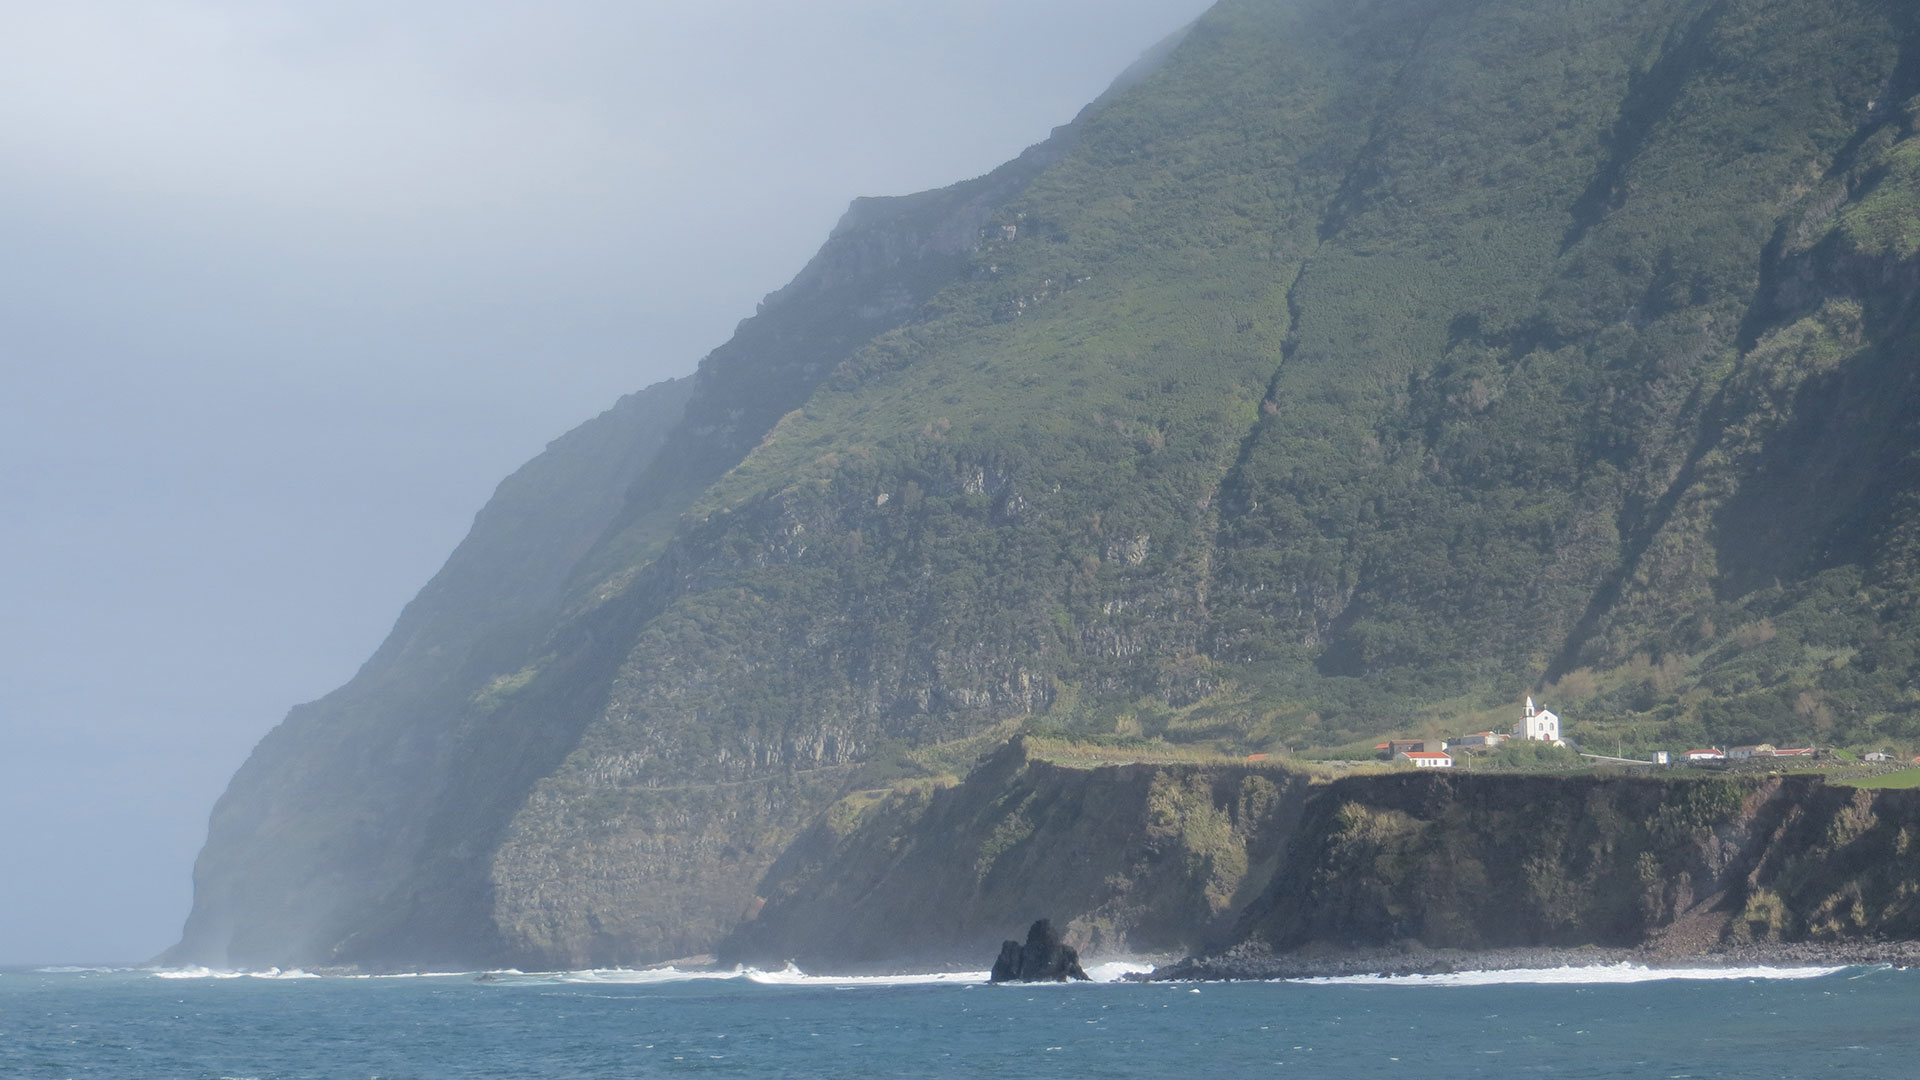 Island of Flores, the Azores, where Europe begins.